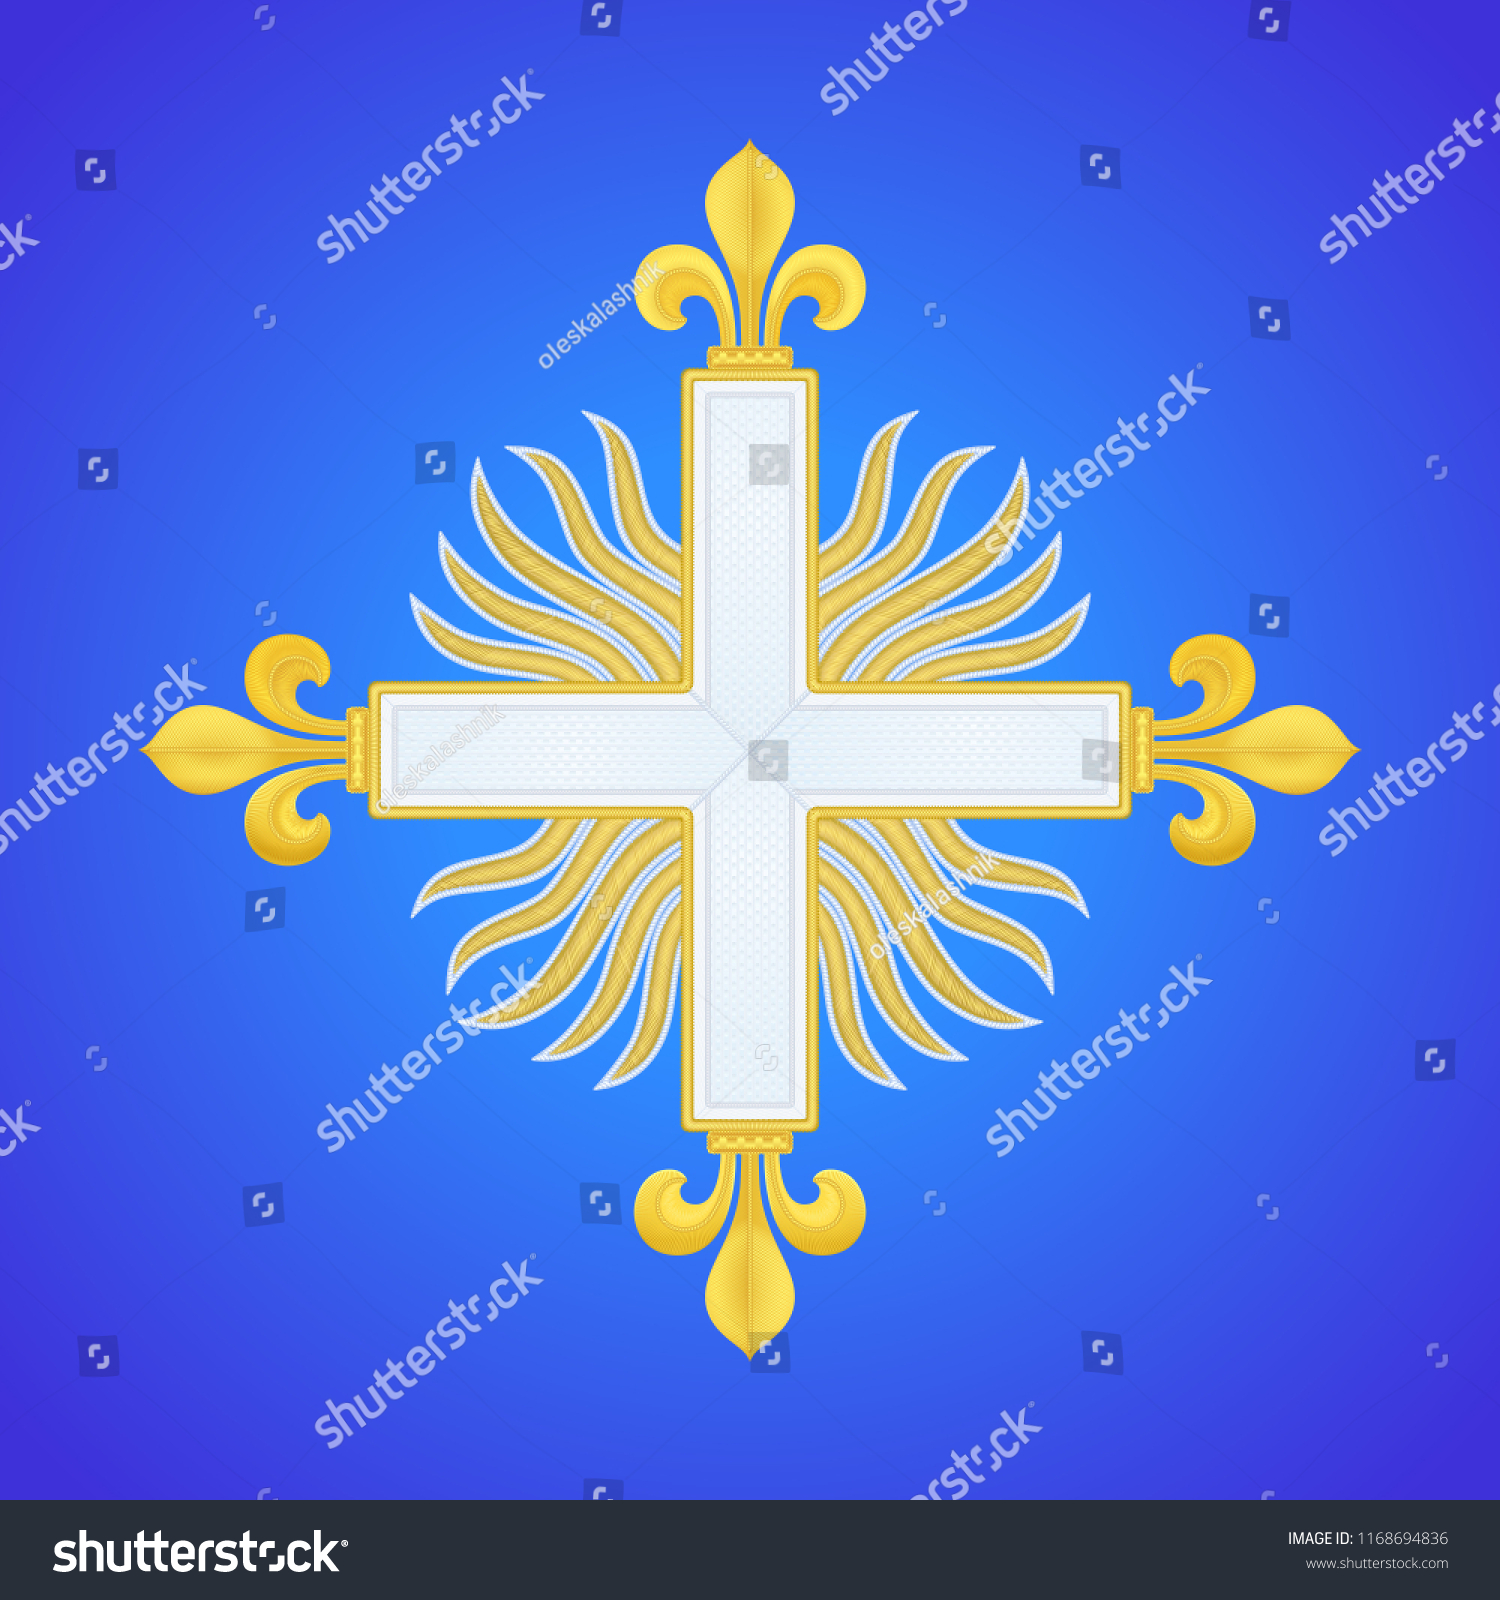 Musketeer Cross Fleury 2nd Company Sign Stock Vector Royalty Free